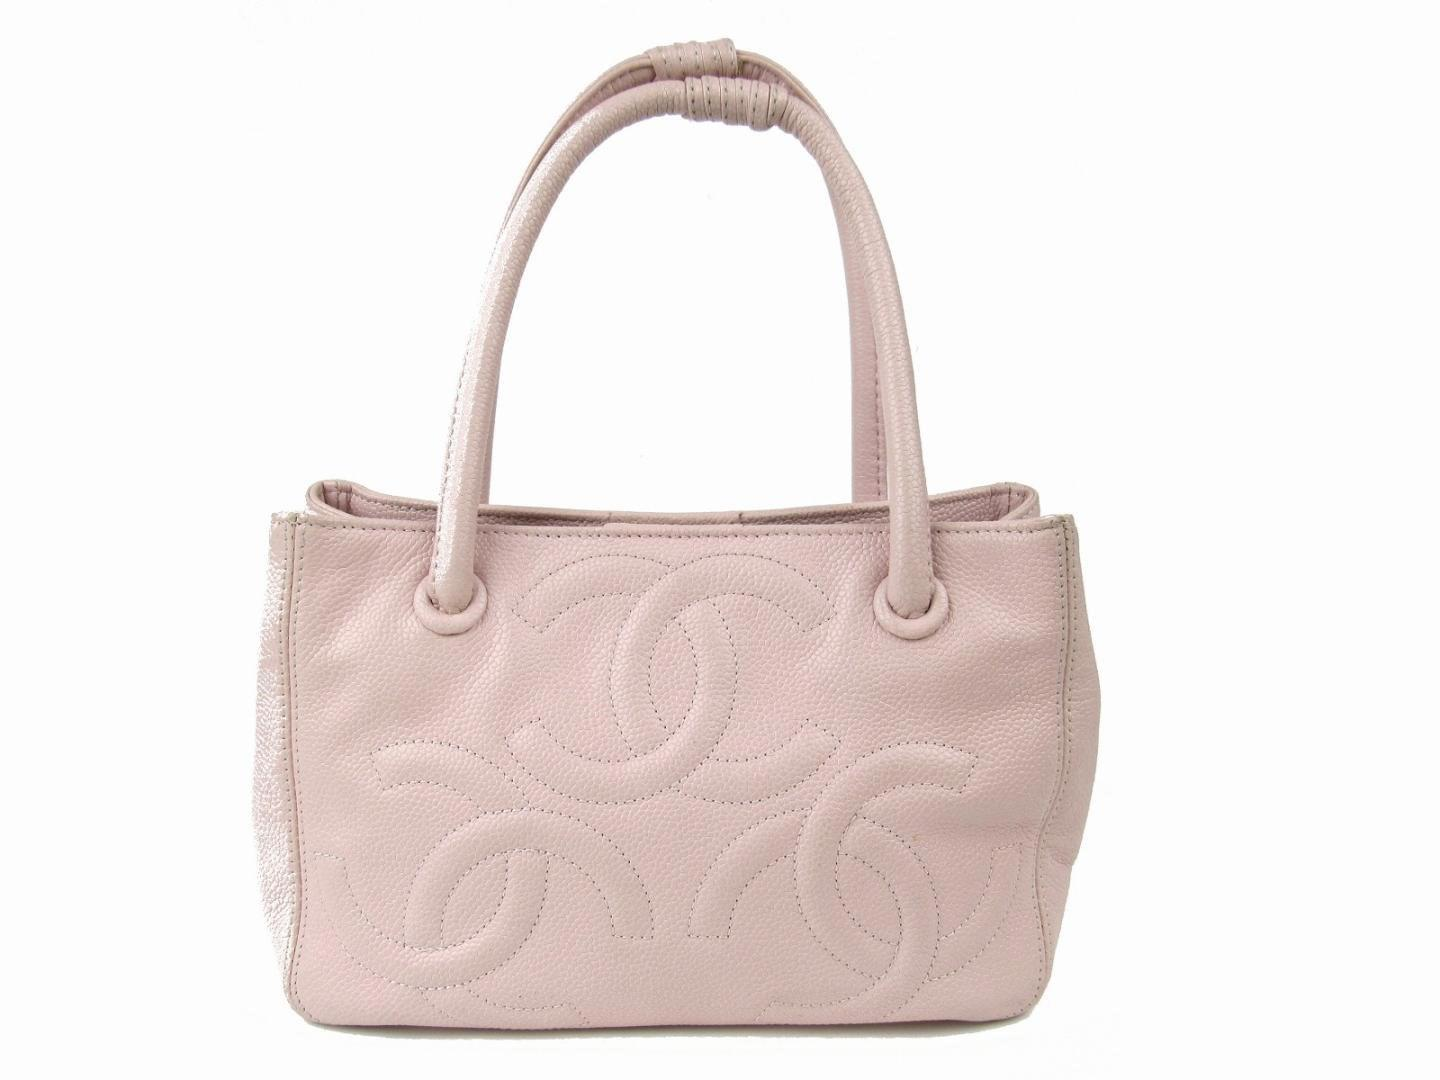 16b6b35cfc26 Lyst Chanel Tote Bag Quilted Caviar Leather Light Pink In